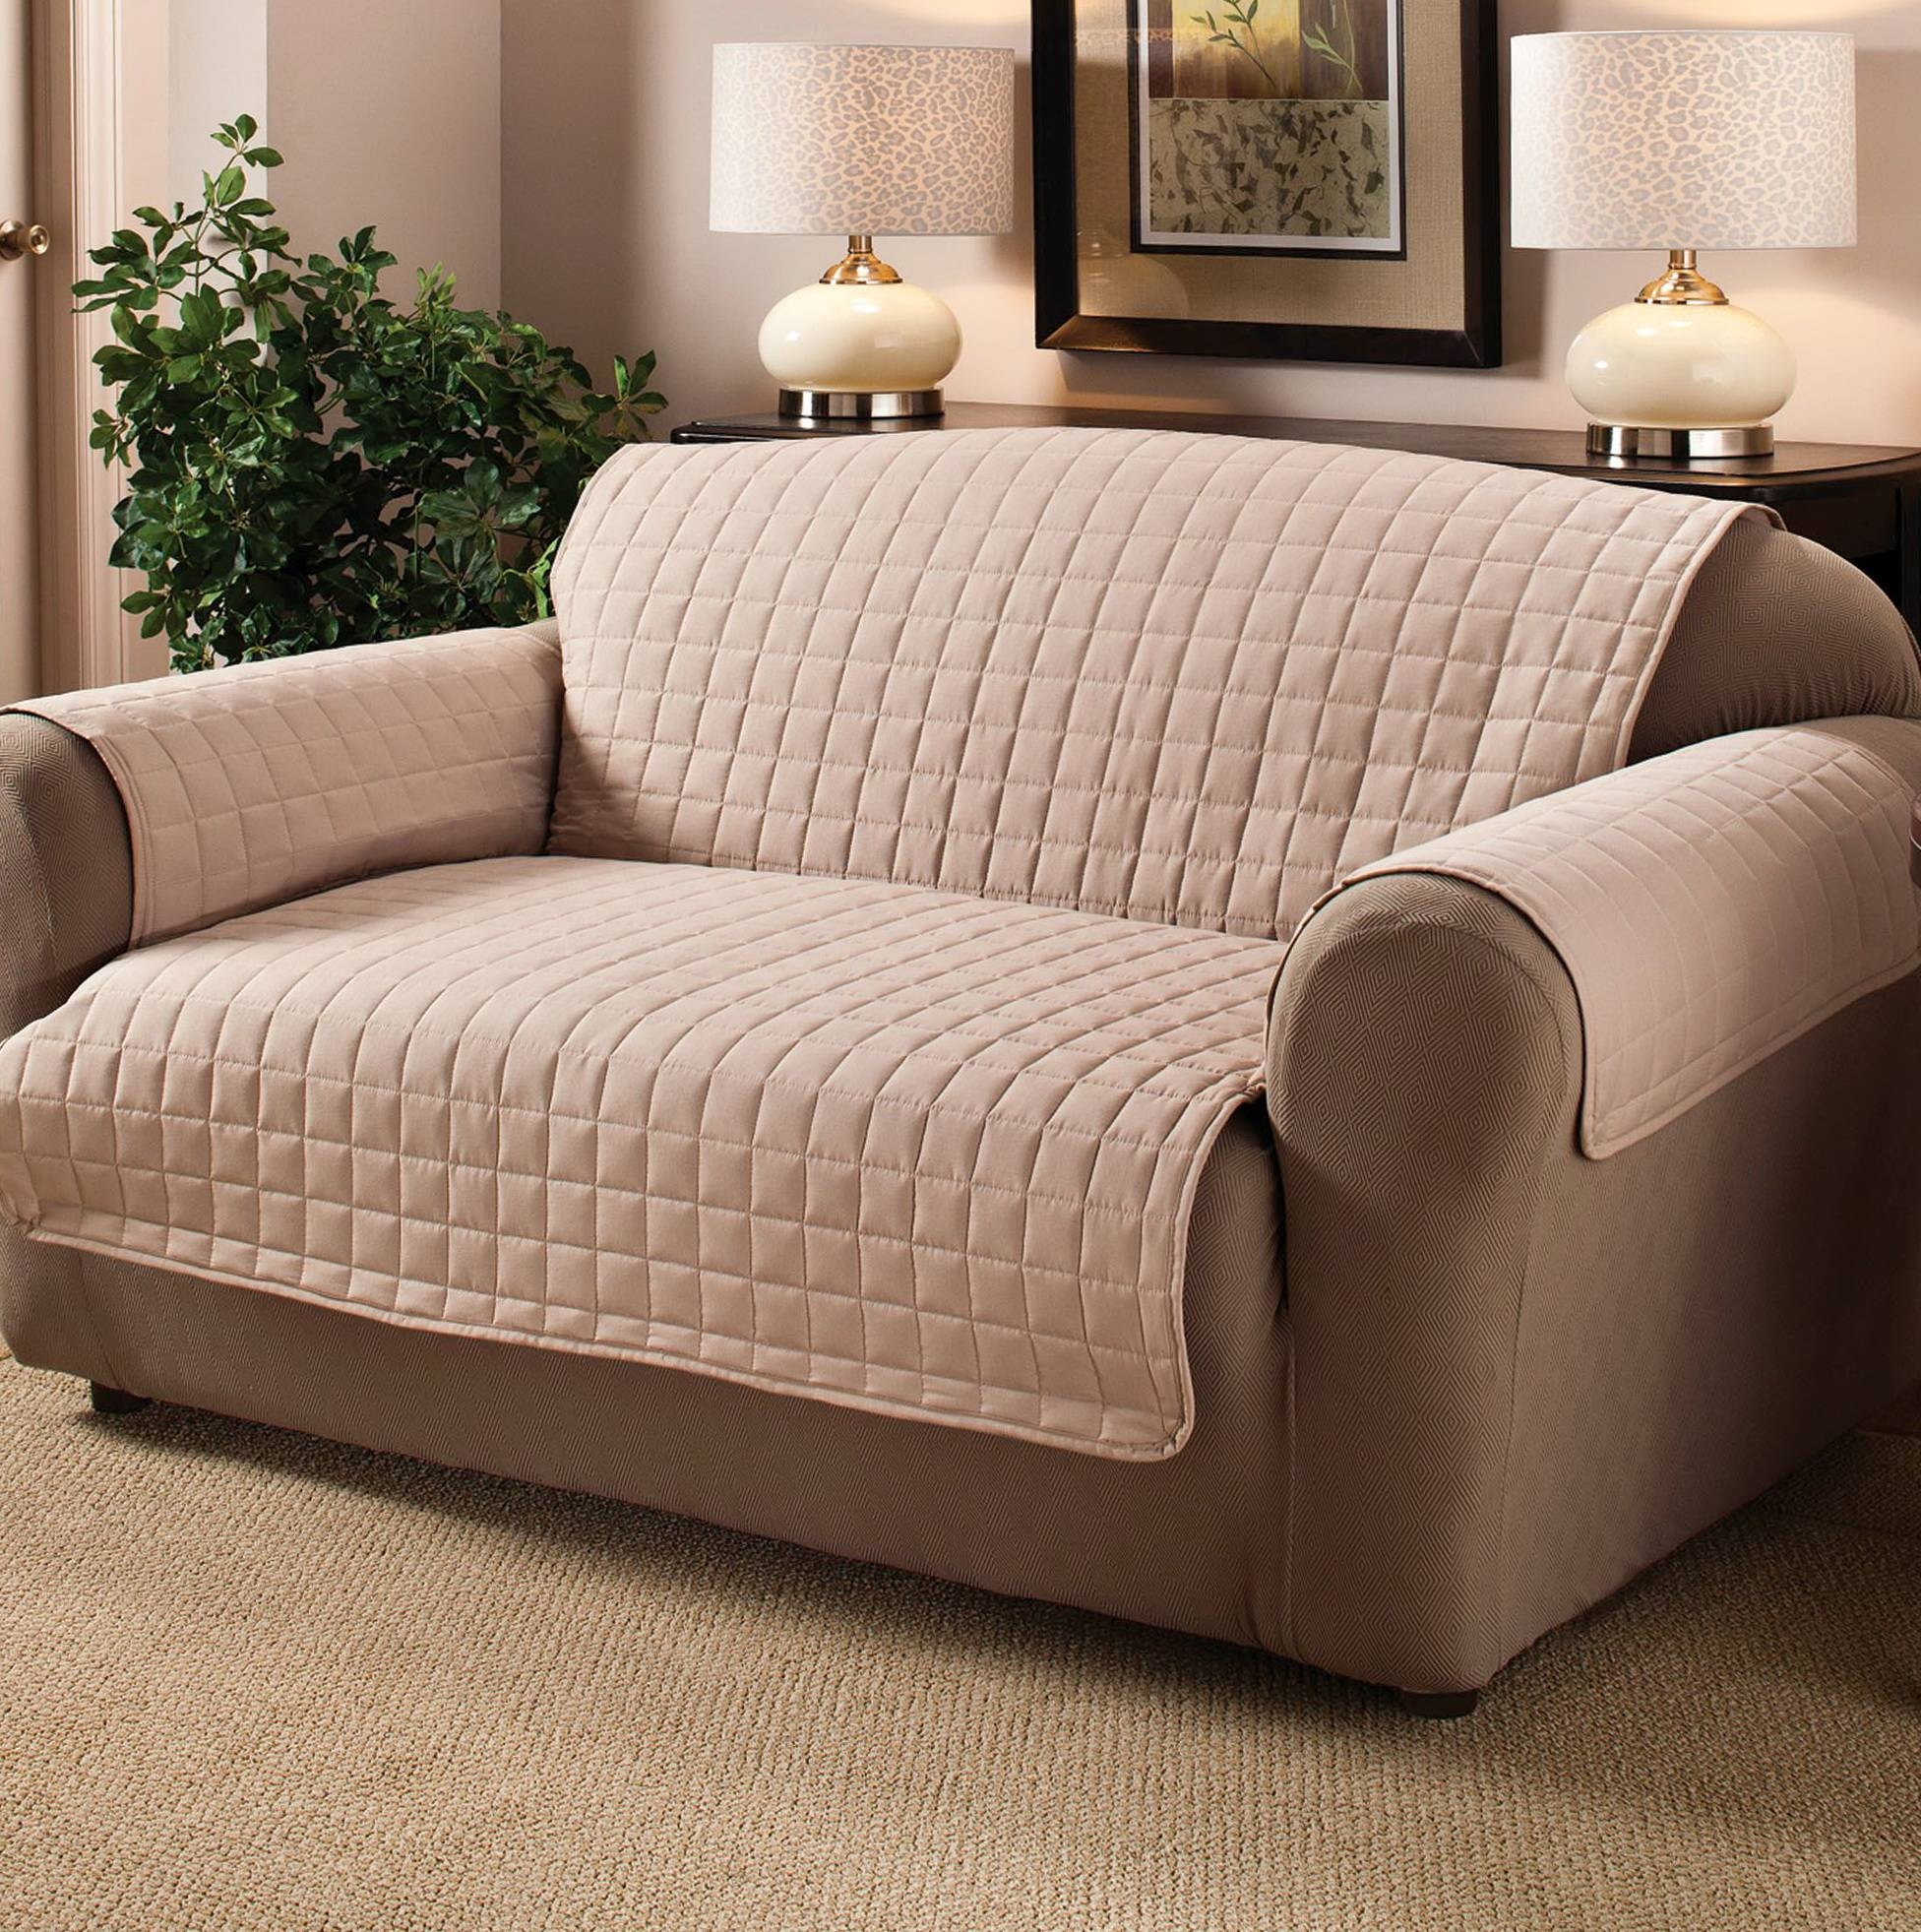 Sofas Center : Chaise Lounge Sofa Covers Sectional Cushion And for Chaise Sofa Covers (Image 22 of 30)